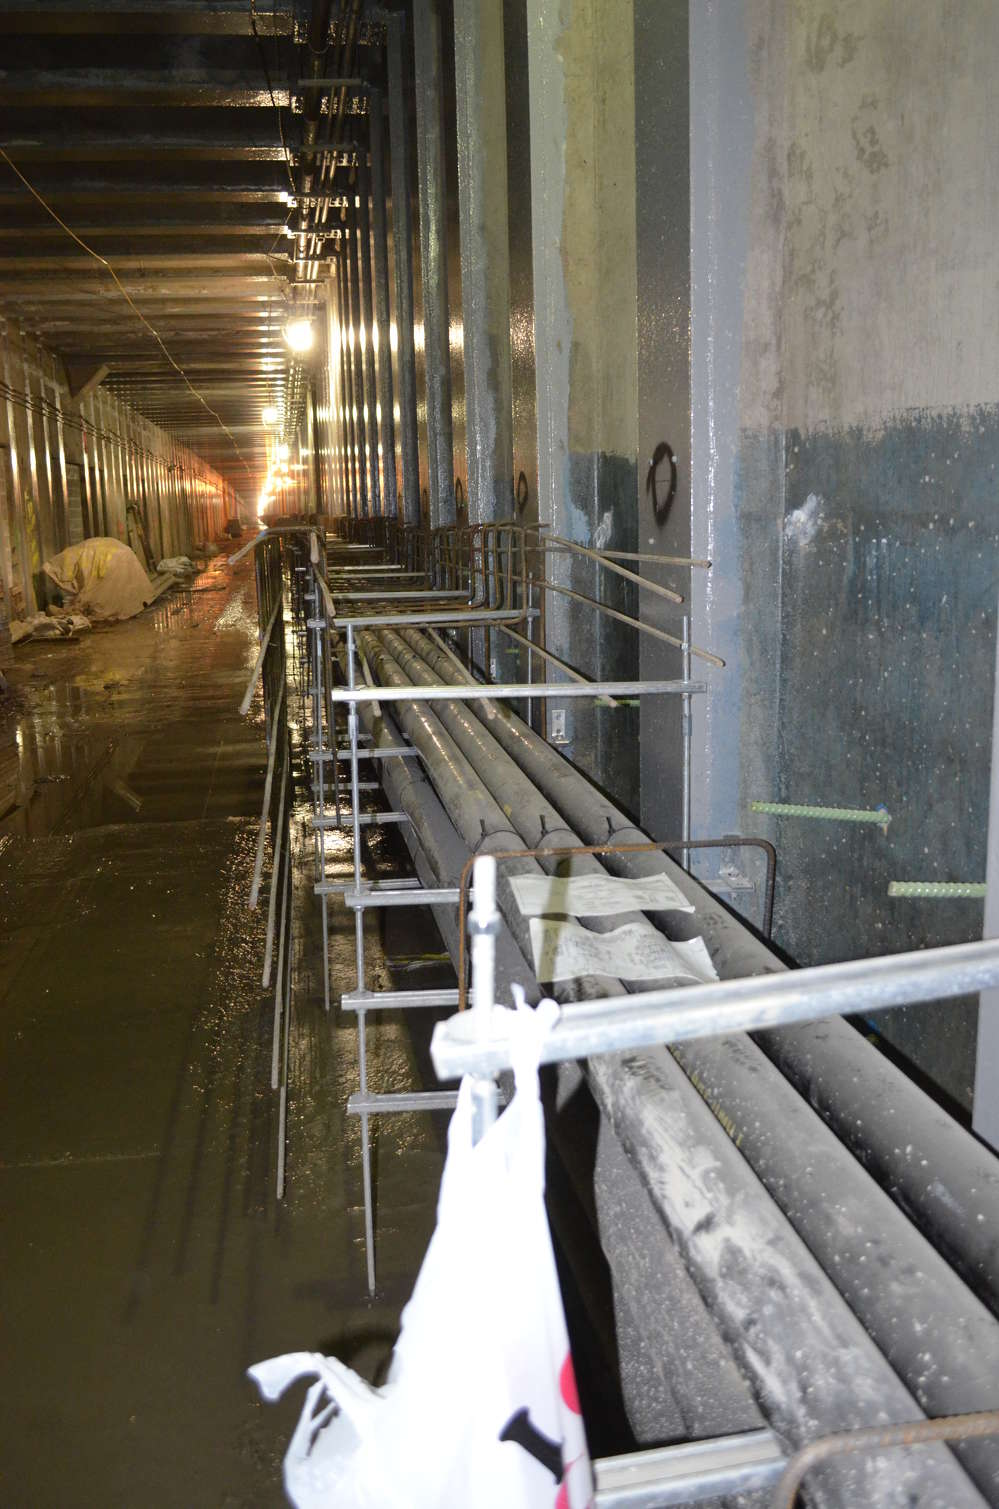 Conduits and reinforcing steel can be seen running along the length of the tunnel before the concrete is placed to create the duct bench.